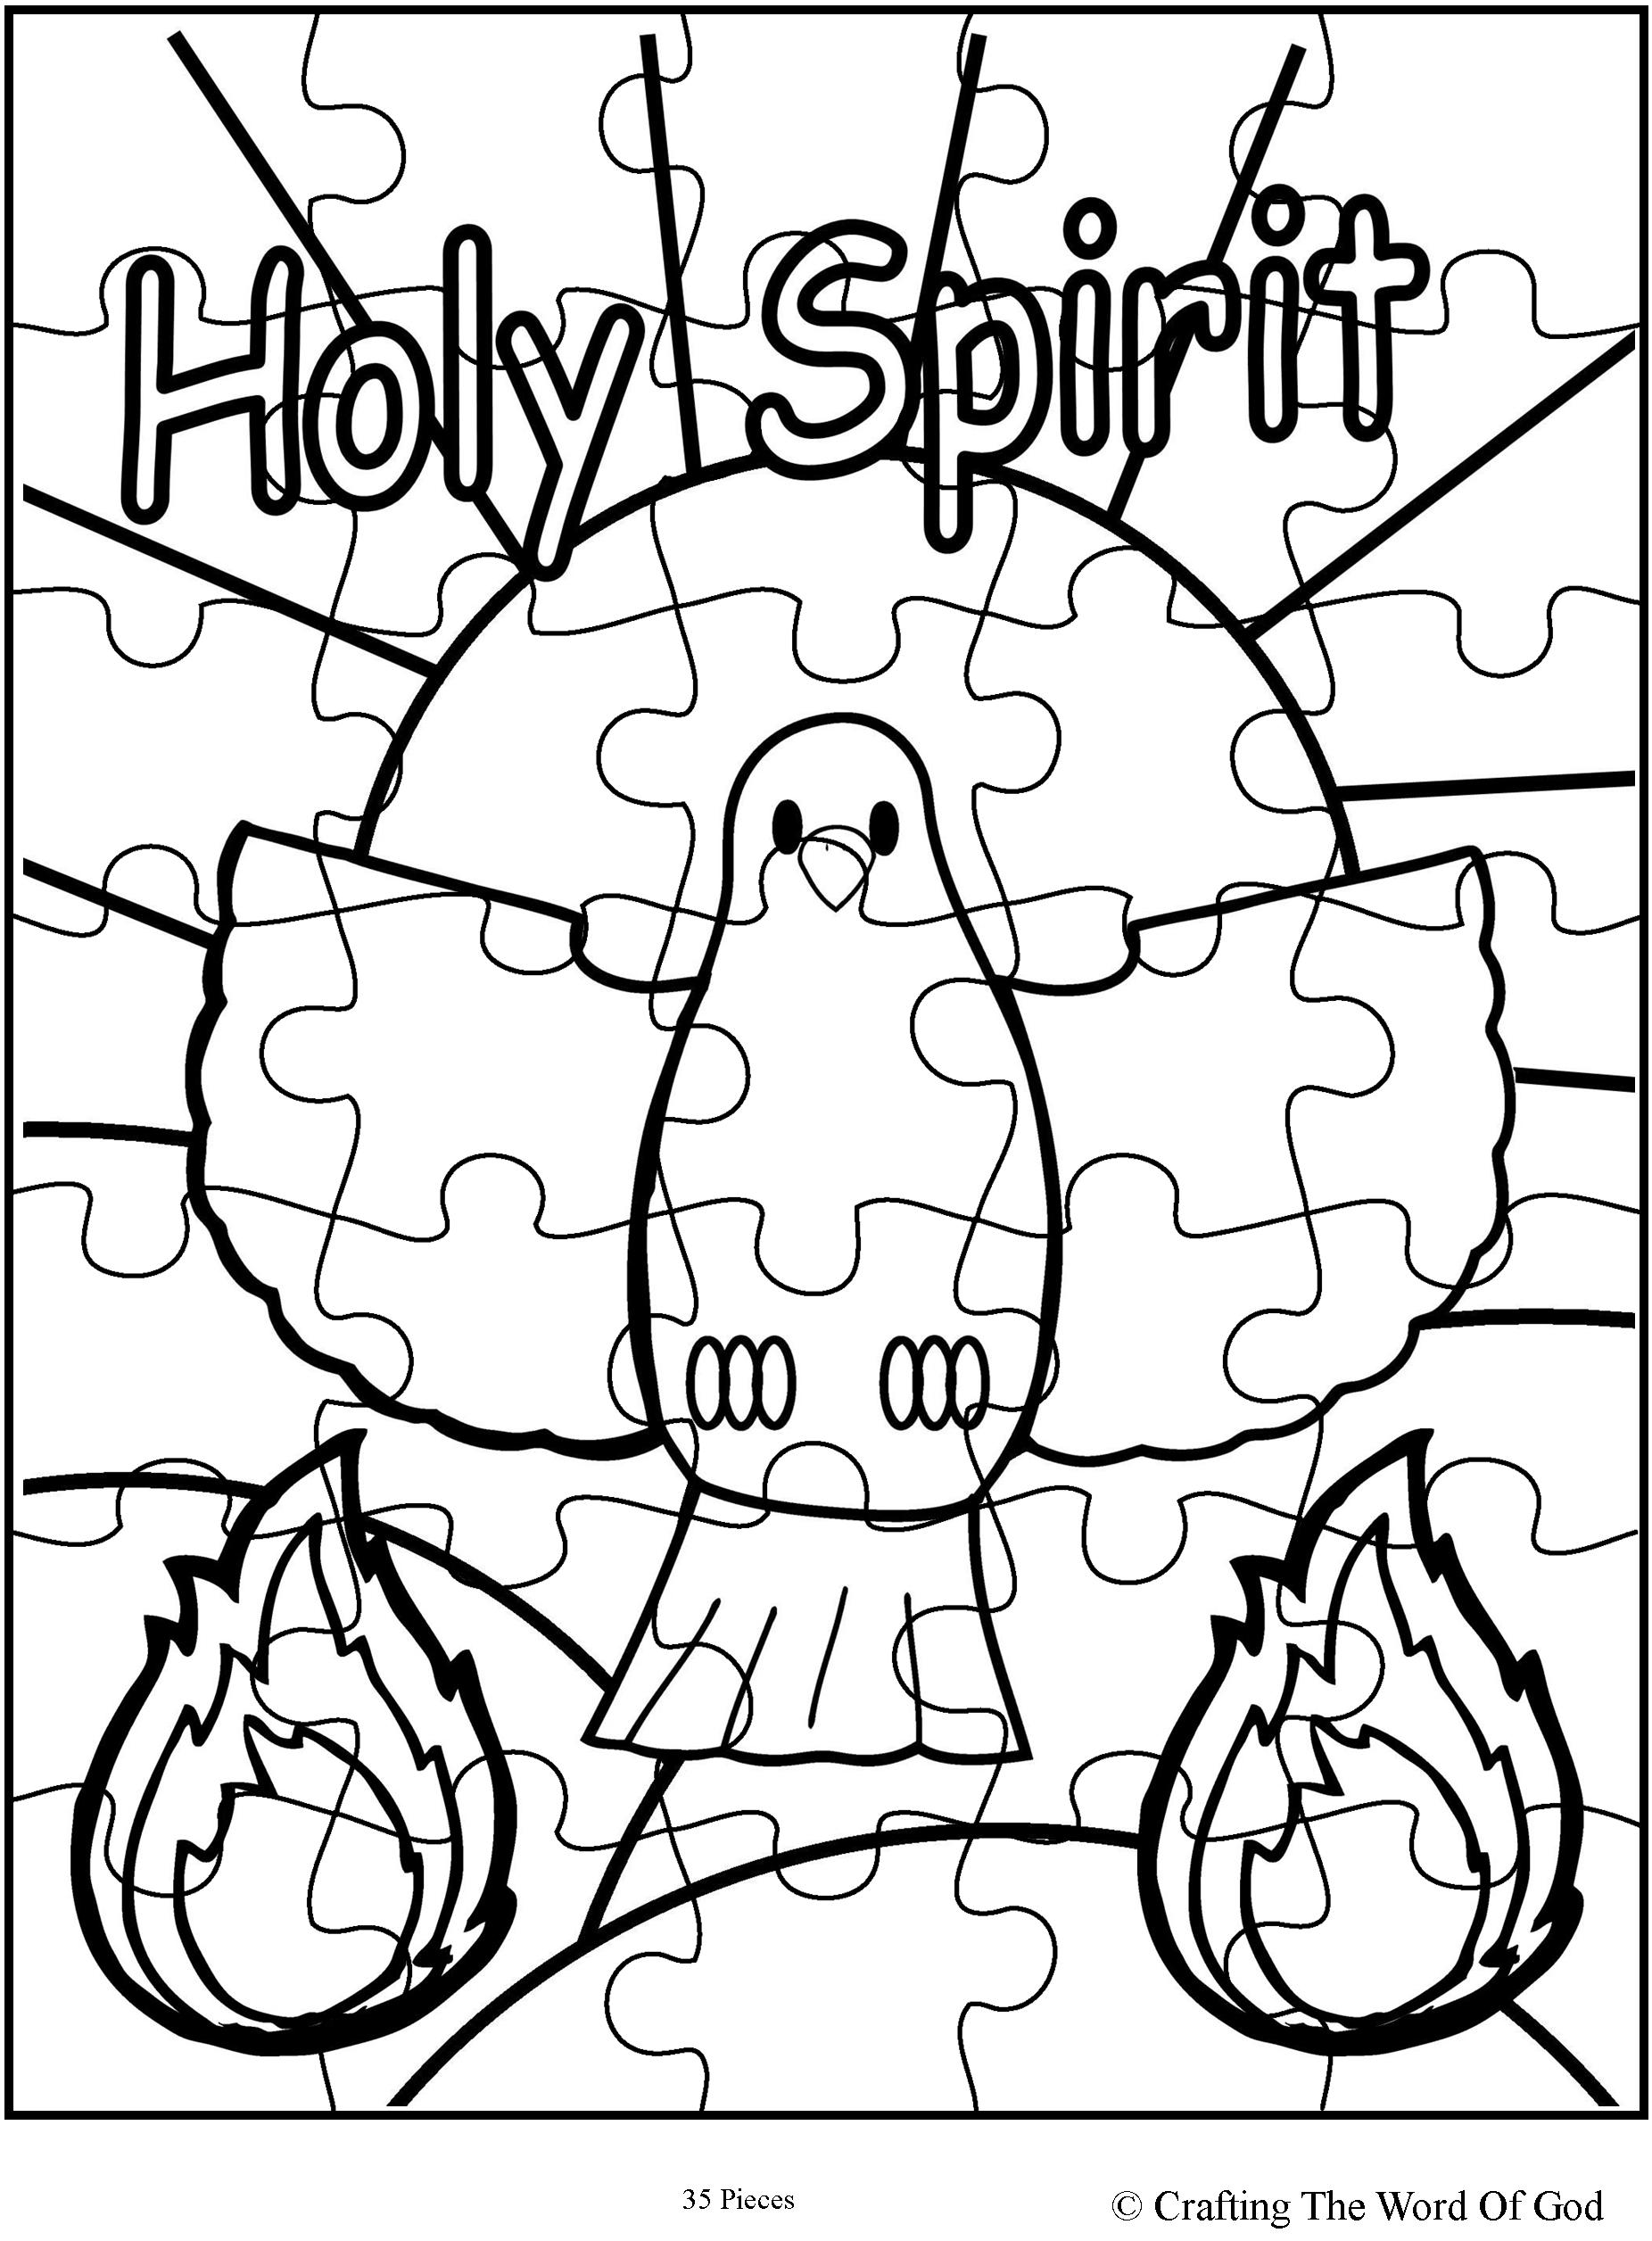 Holy Spirit Puzzle Activity Sheet Crafting The Word Of God